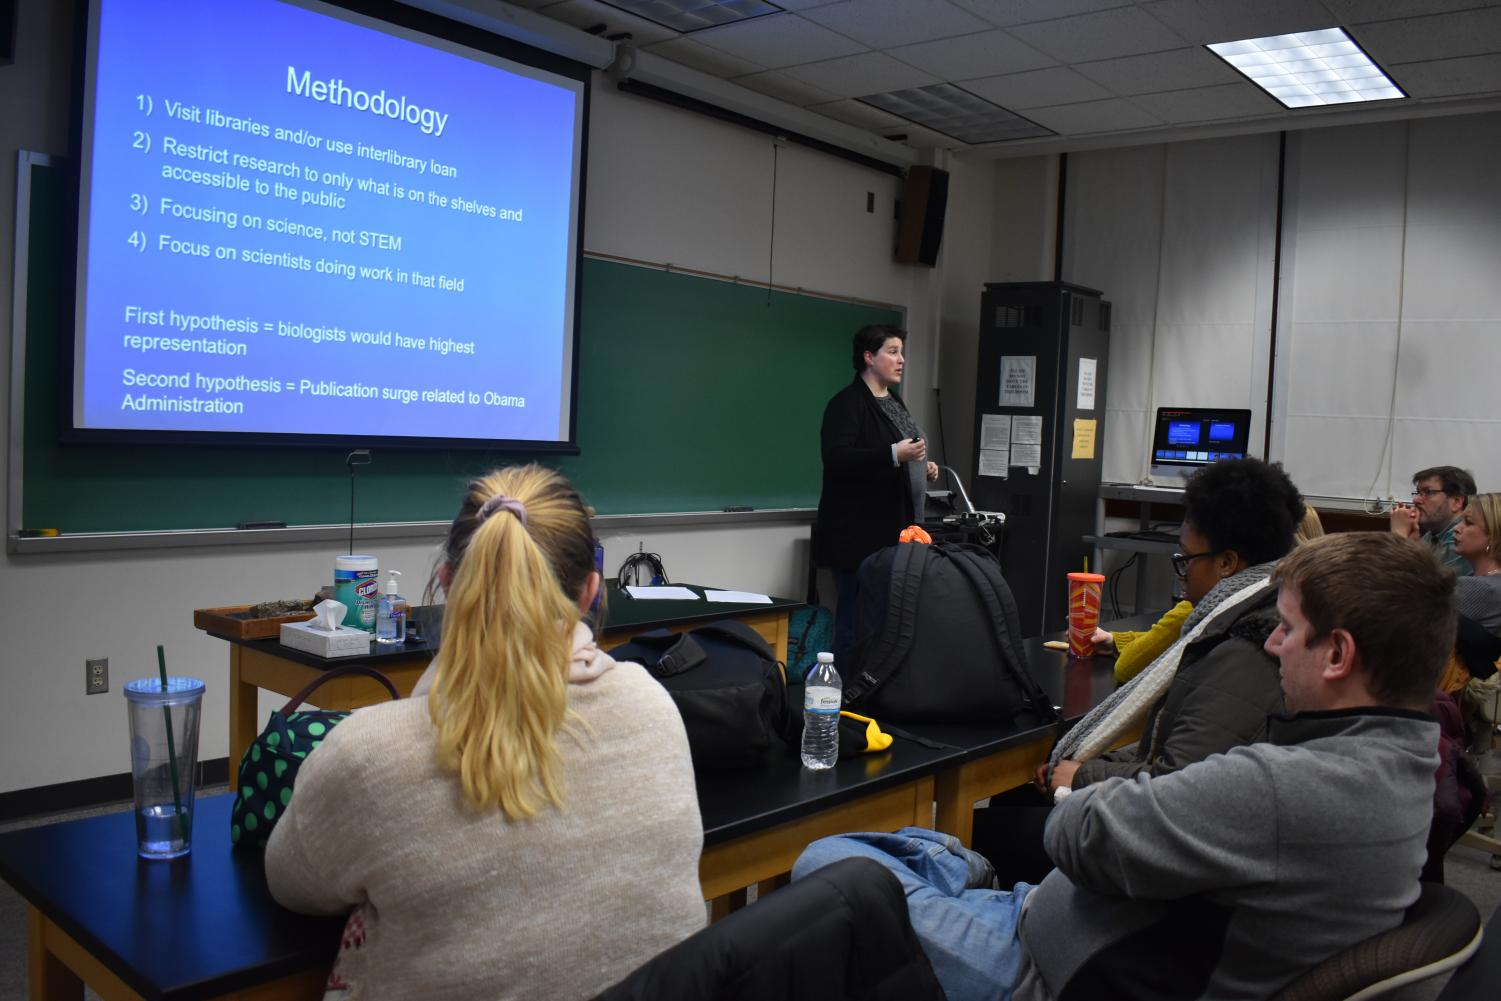 UW-Fox Valley professor Dr. Beth A. Johnson spoke last Thursday about the misrepresentation and invisibility of women geoscientists. Johnson's goal is to encourage more women to participate in the sciences.